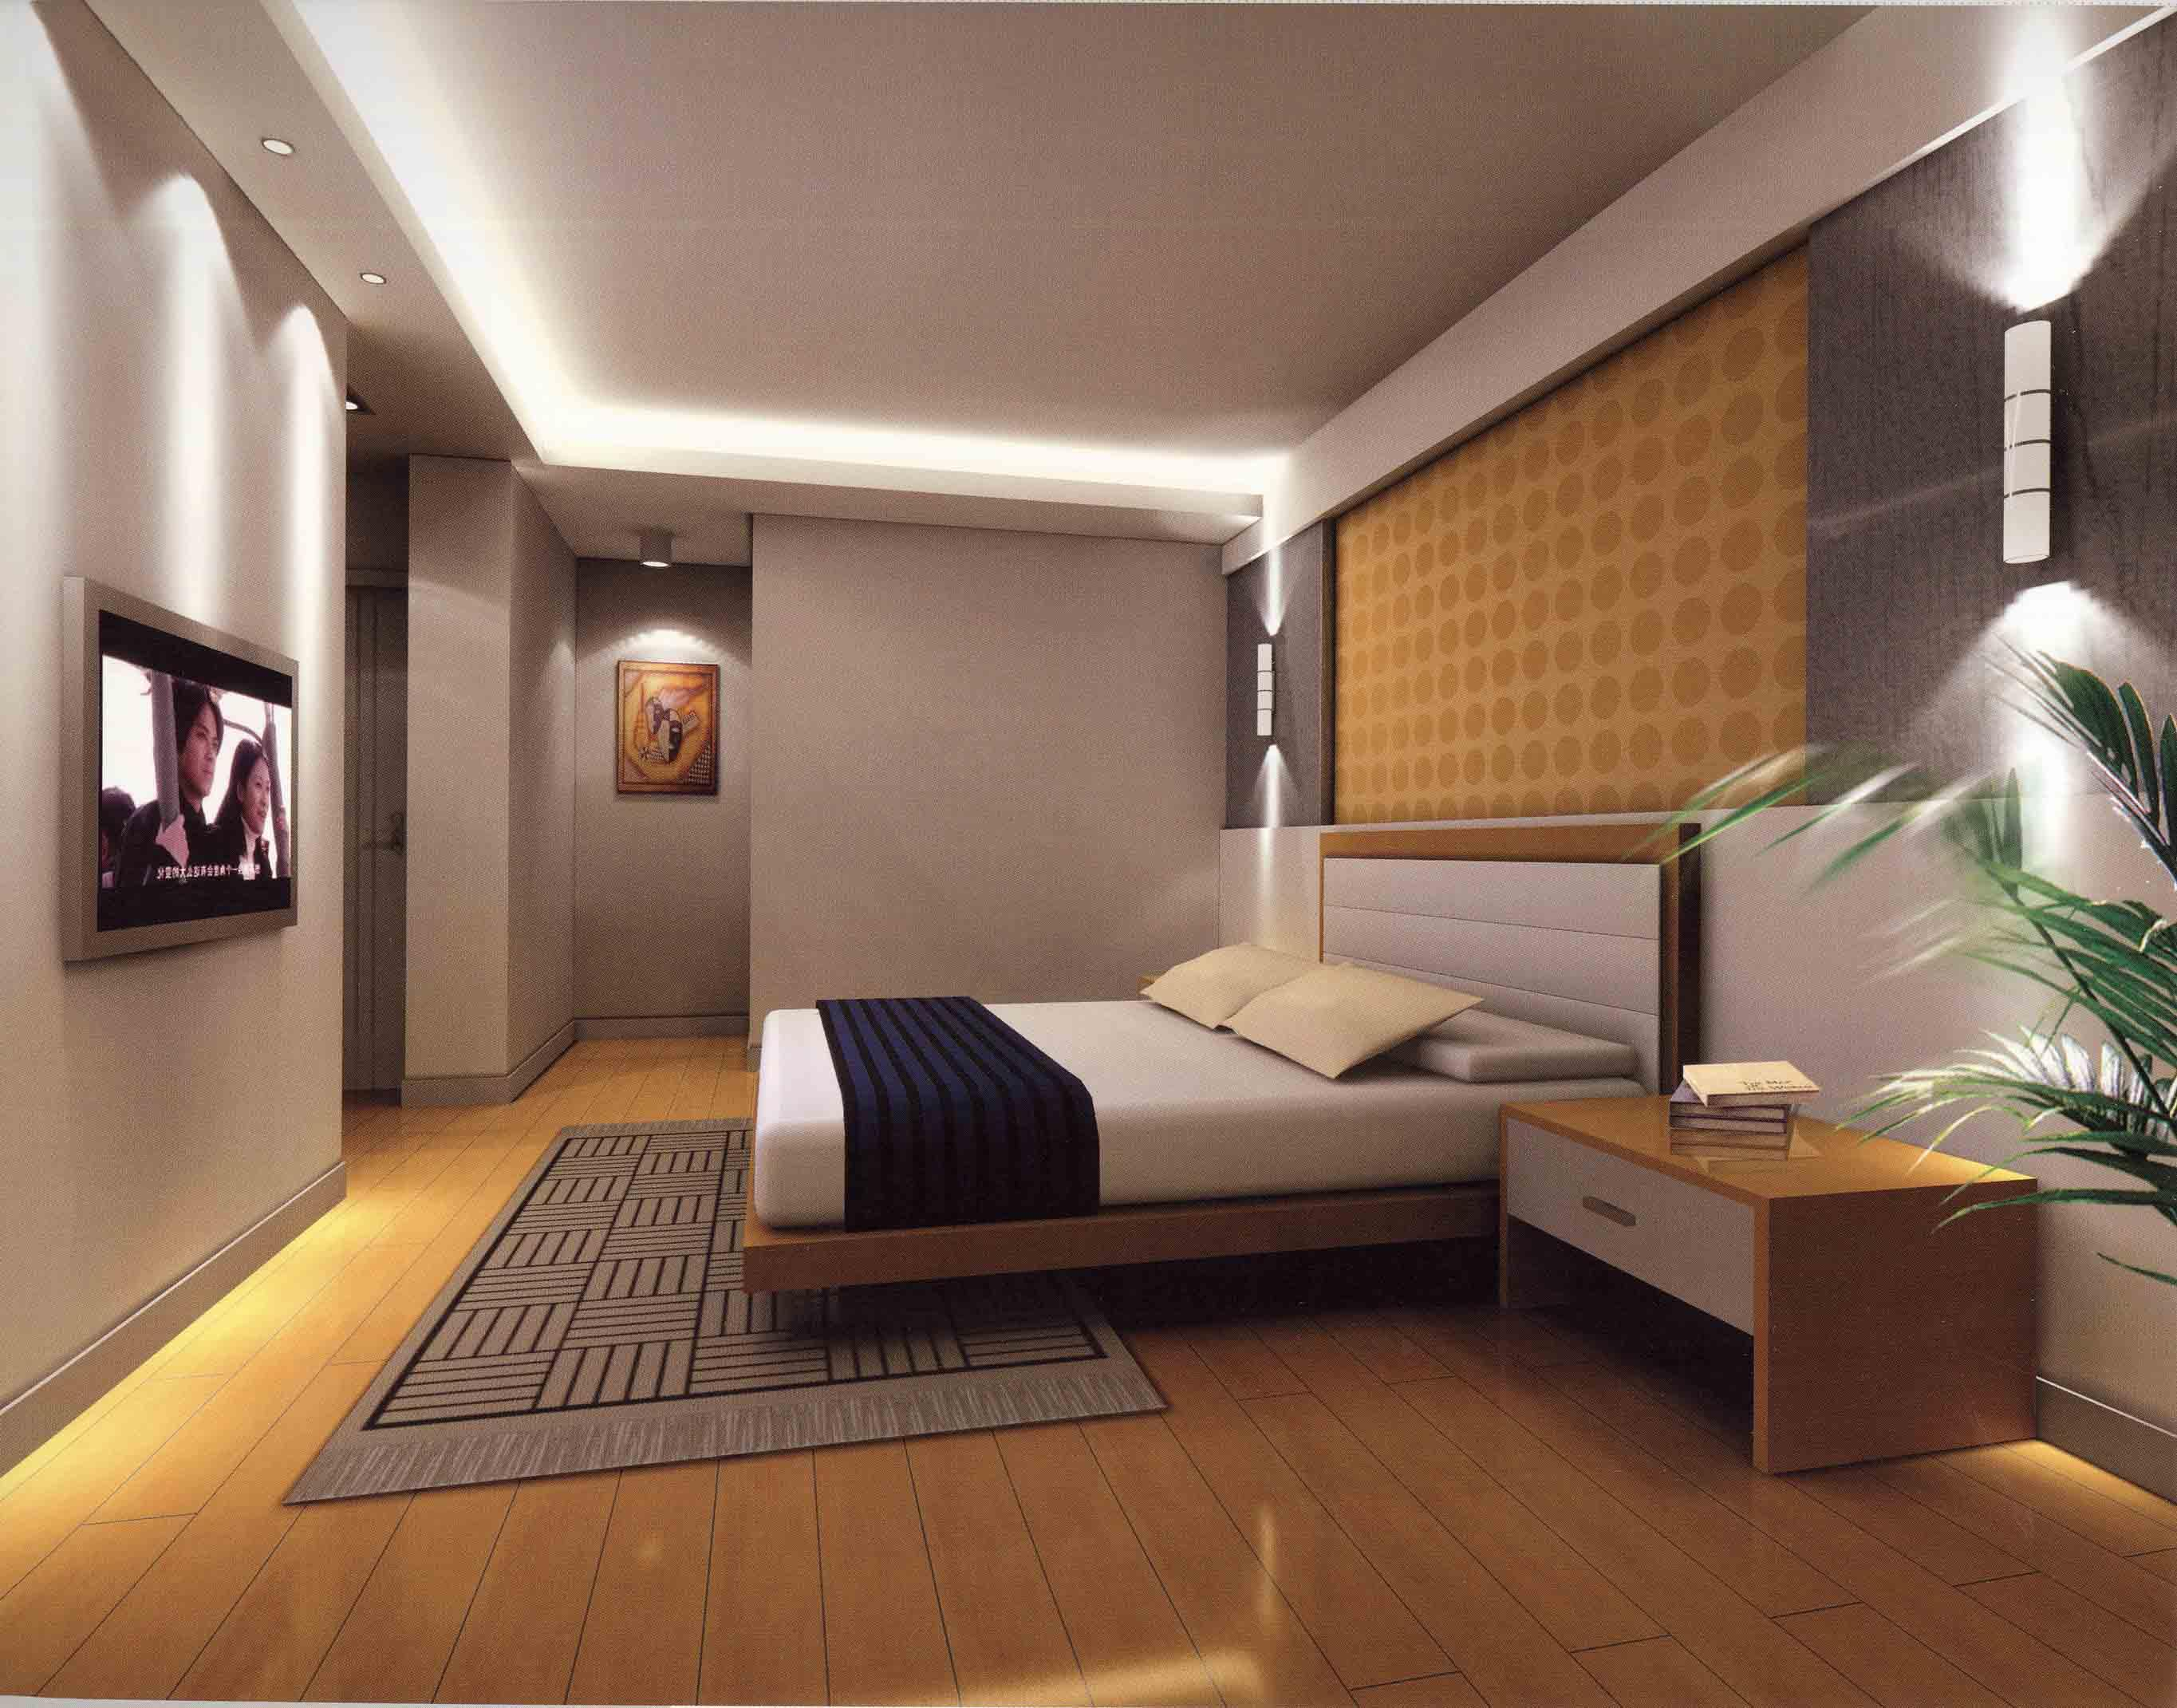 25 cool bedroom designs collection Cool bedroom ideas